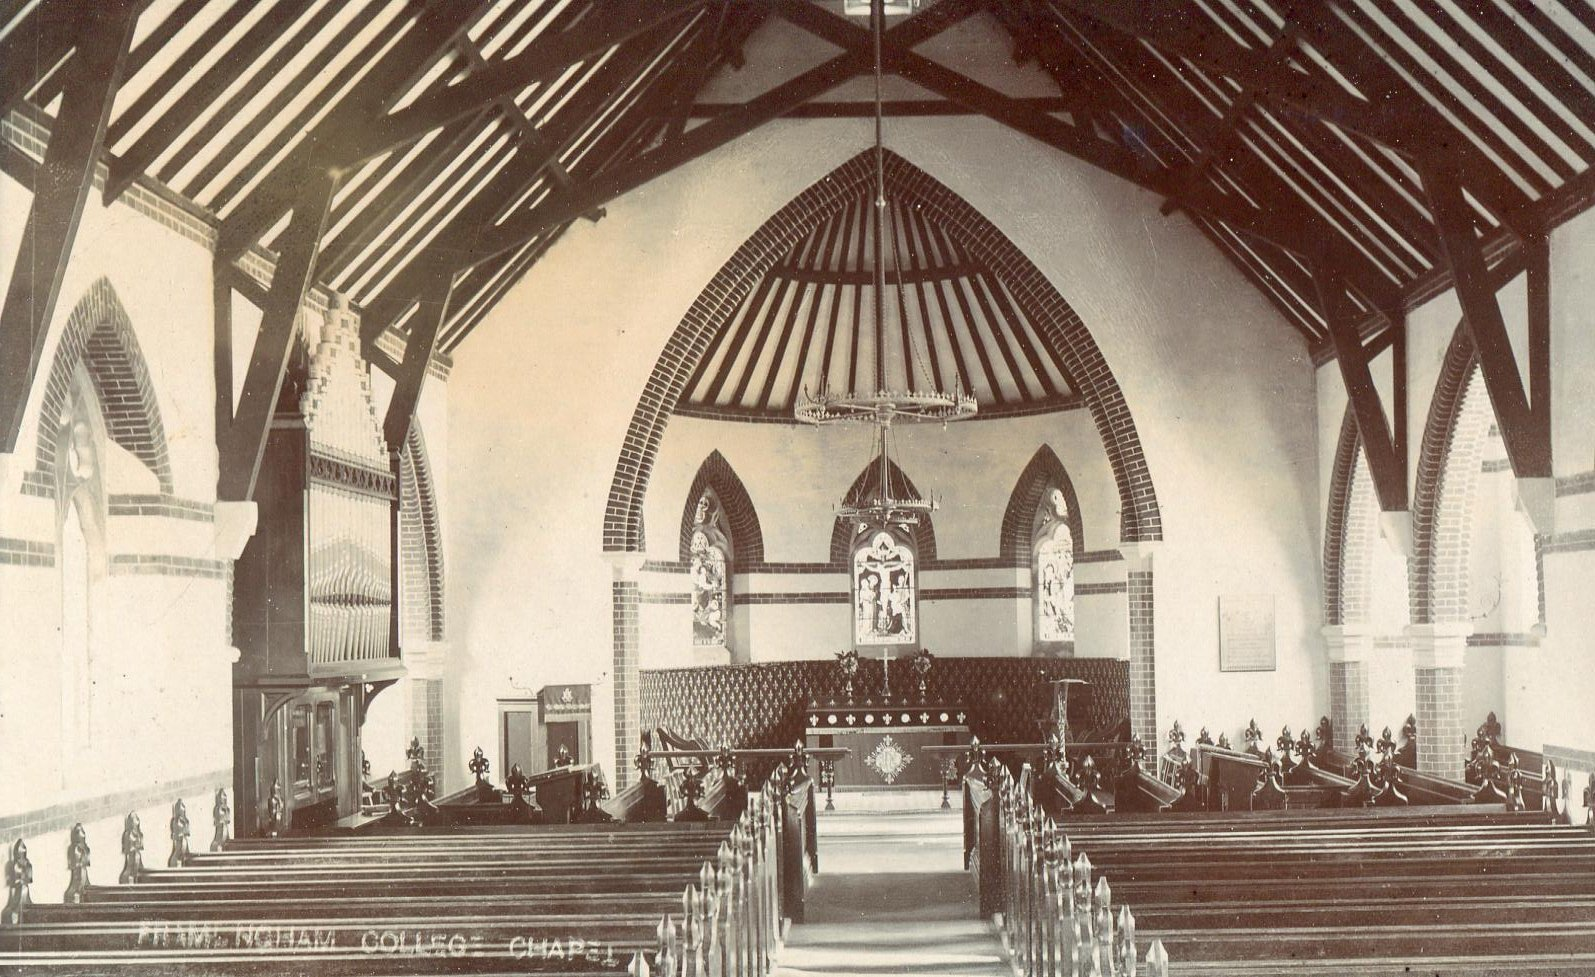 College Chapel interior